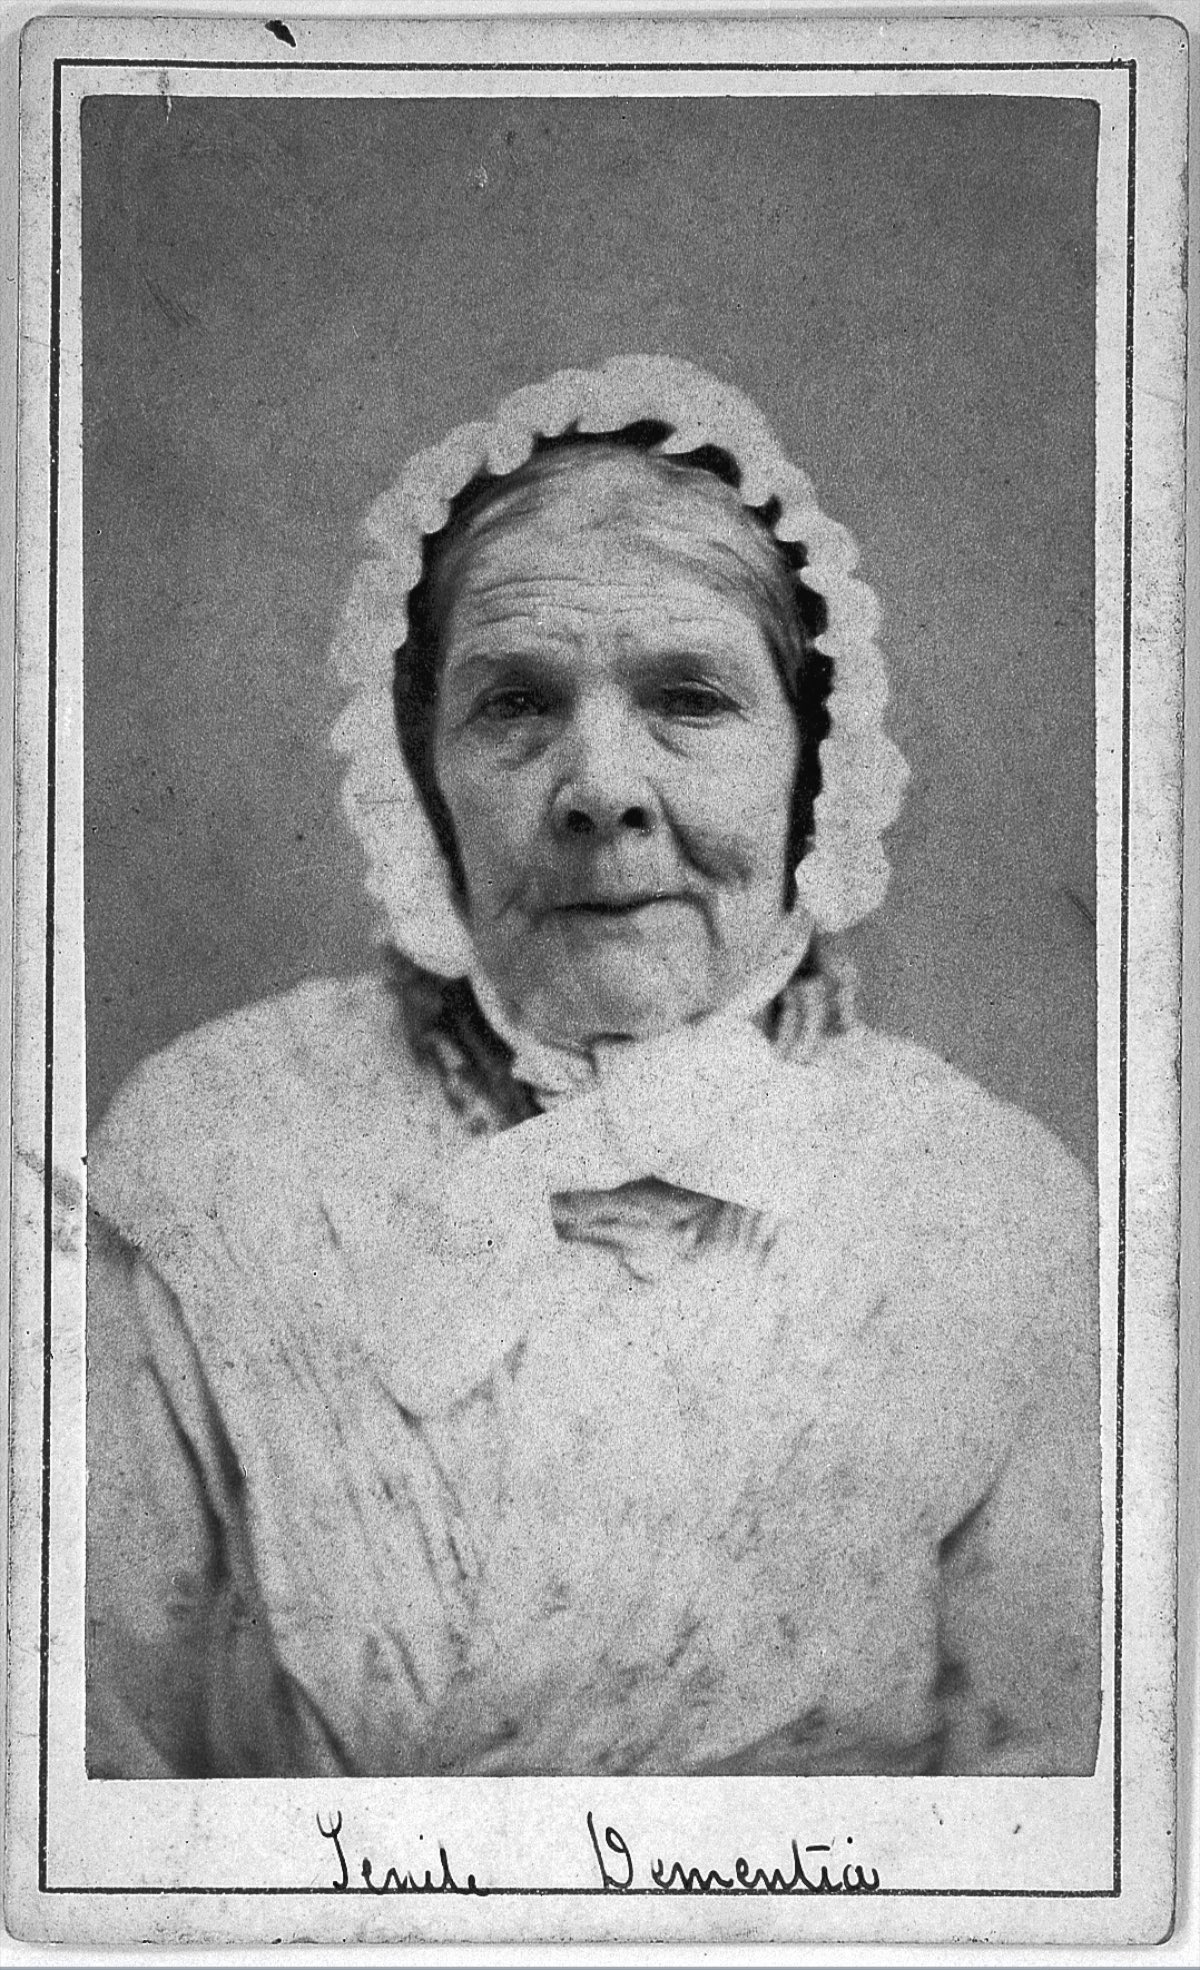 L0019062 'Senile dementia' patient at West Riding Lunatic Asylum